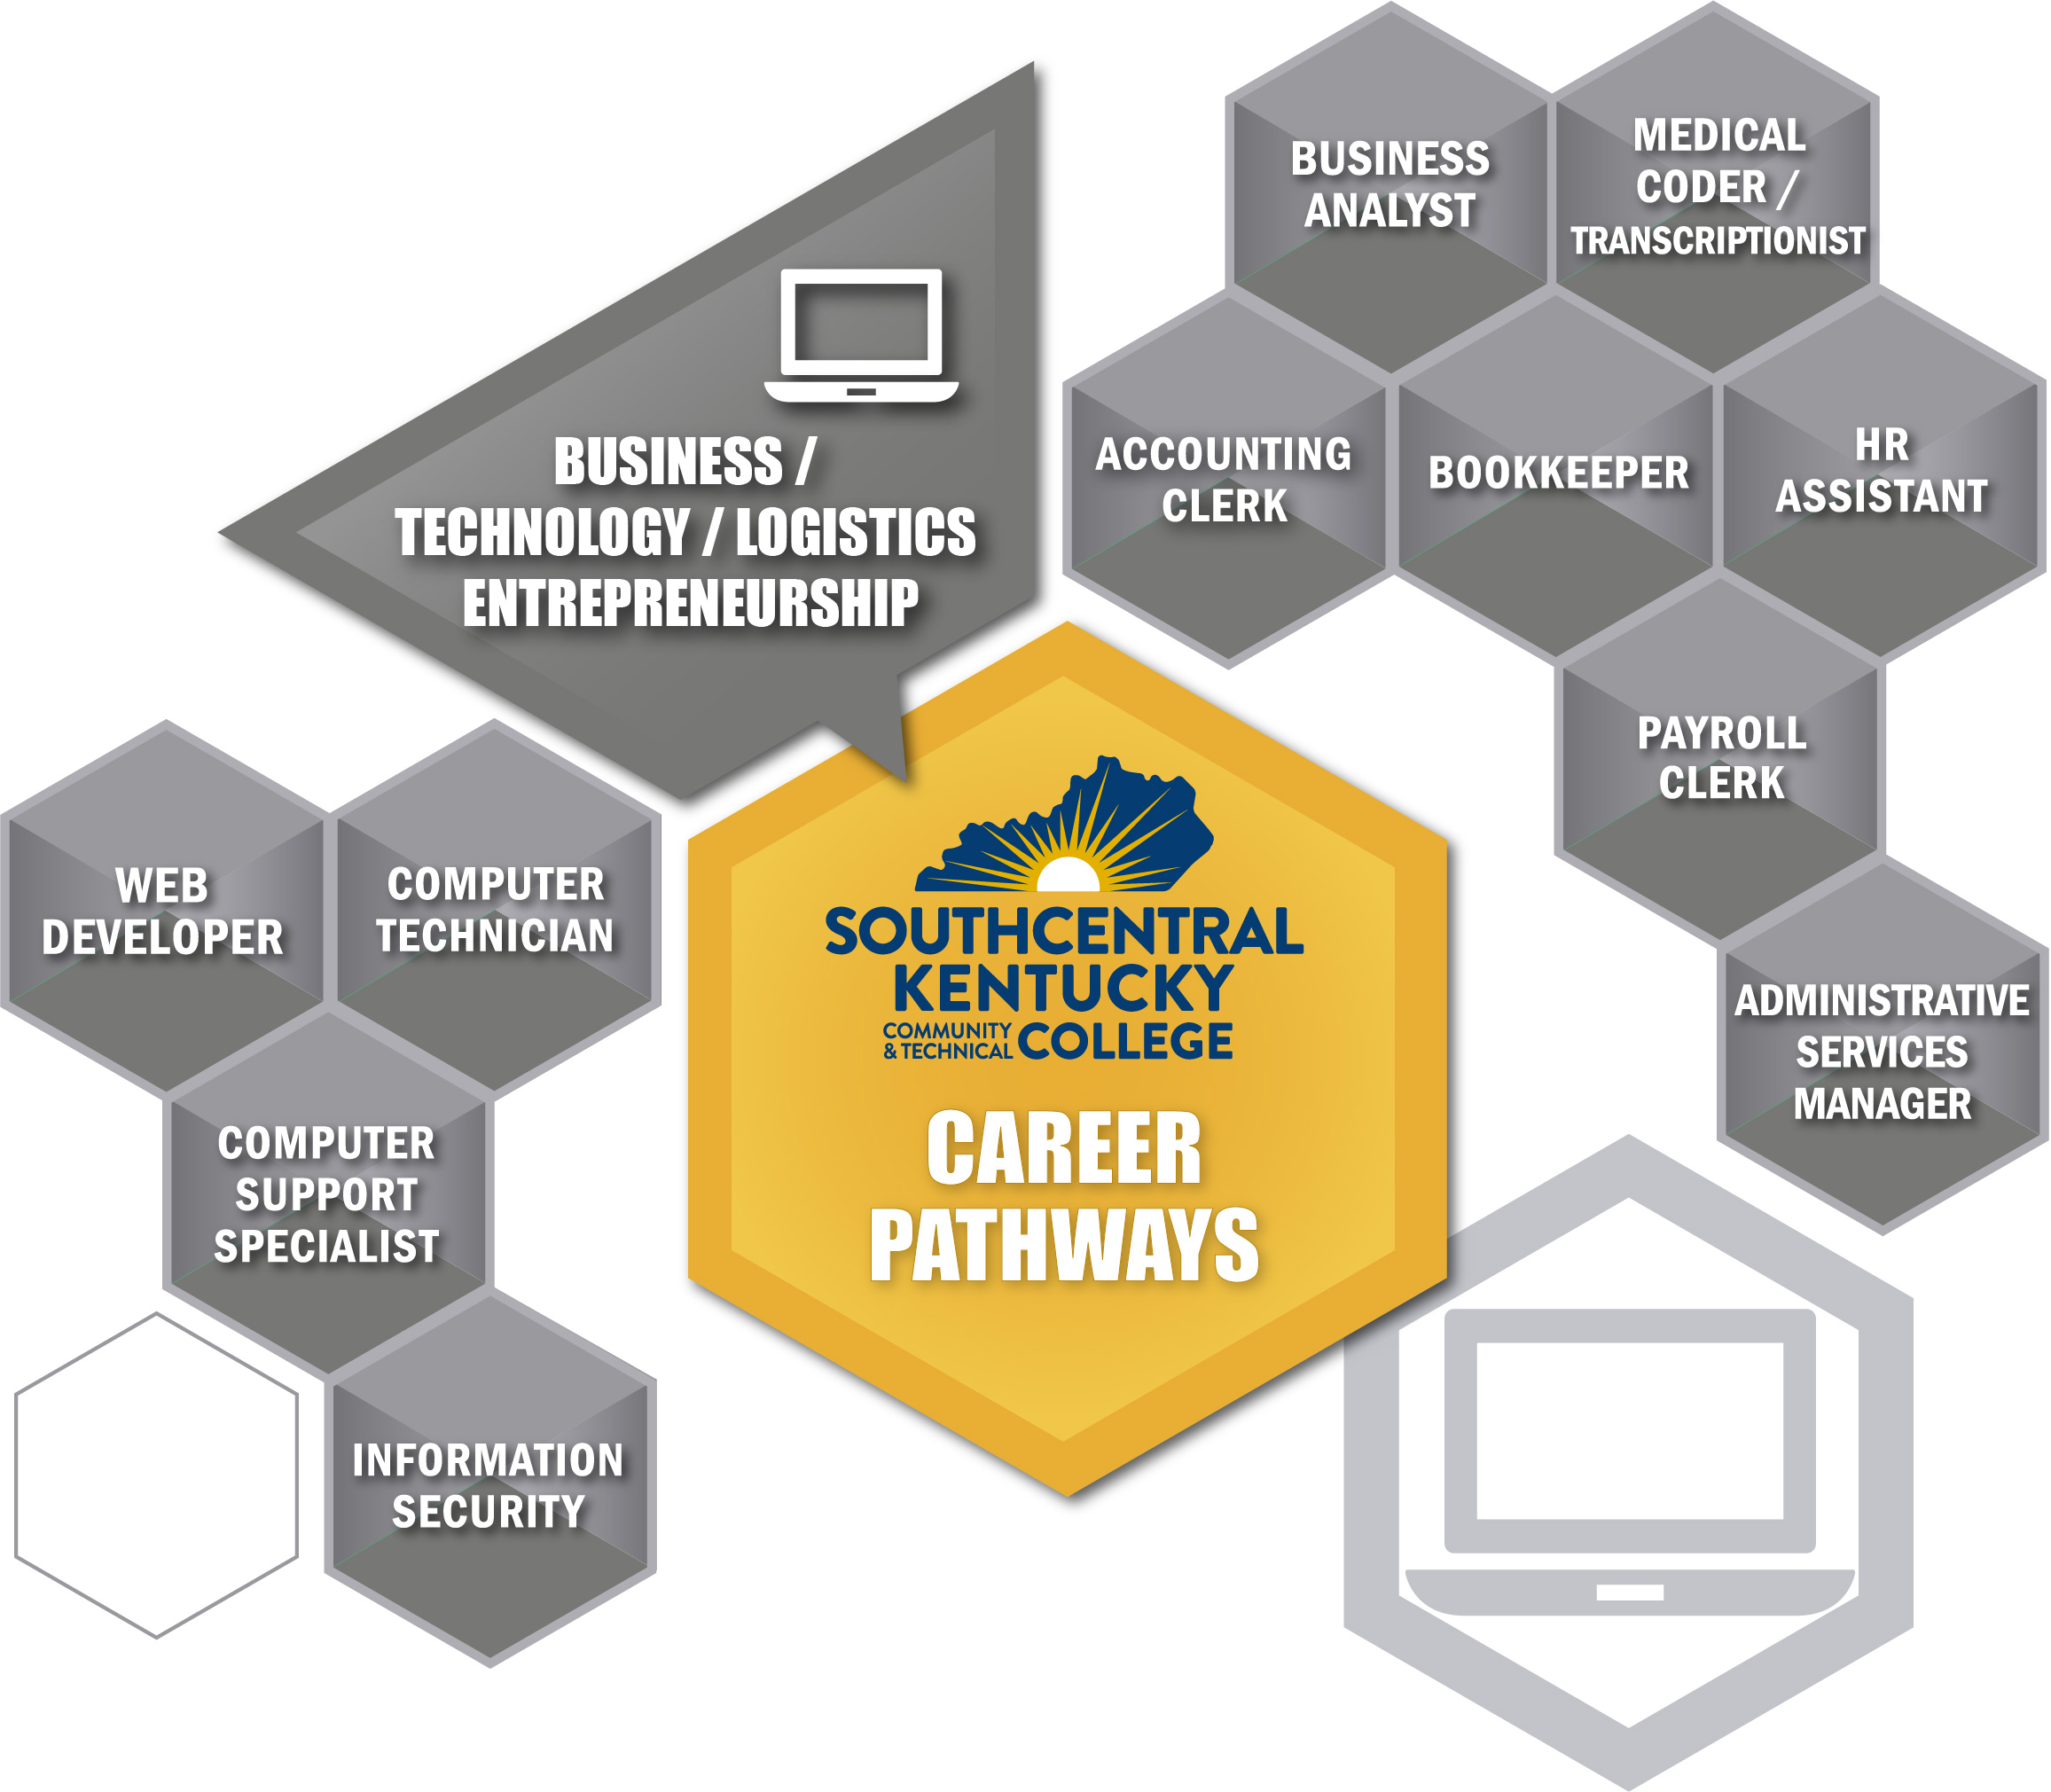 Conventional career sector with related careers. Same careers listed below the image.